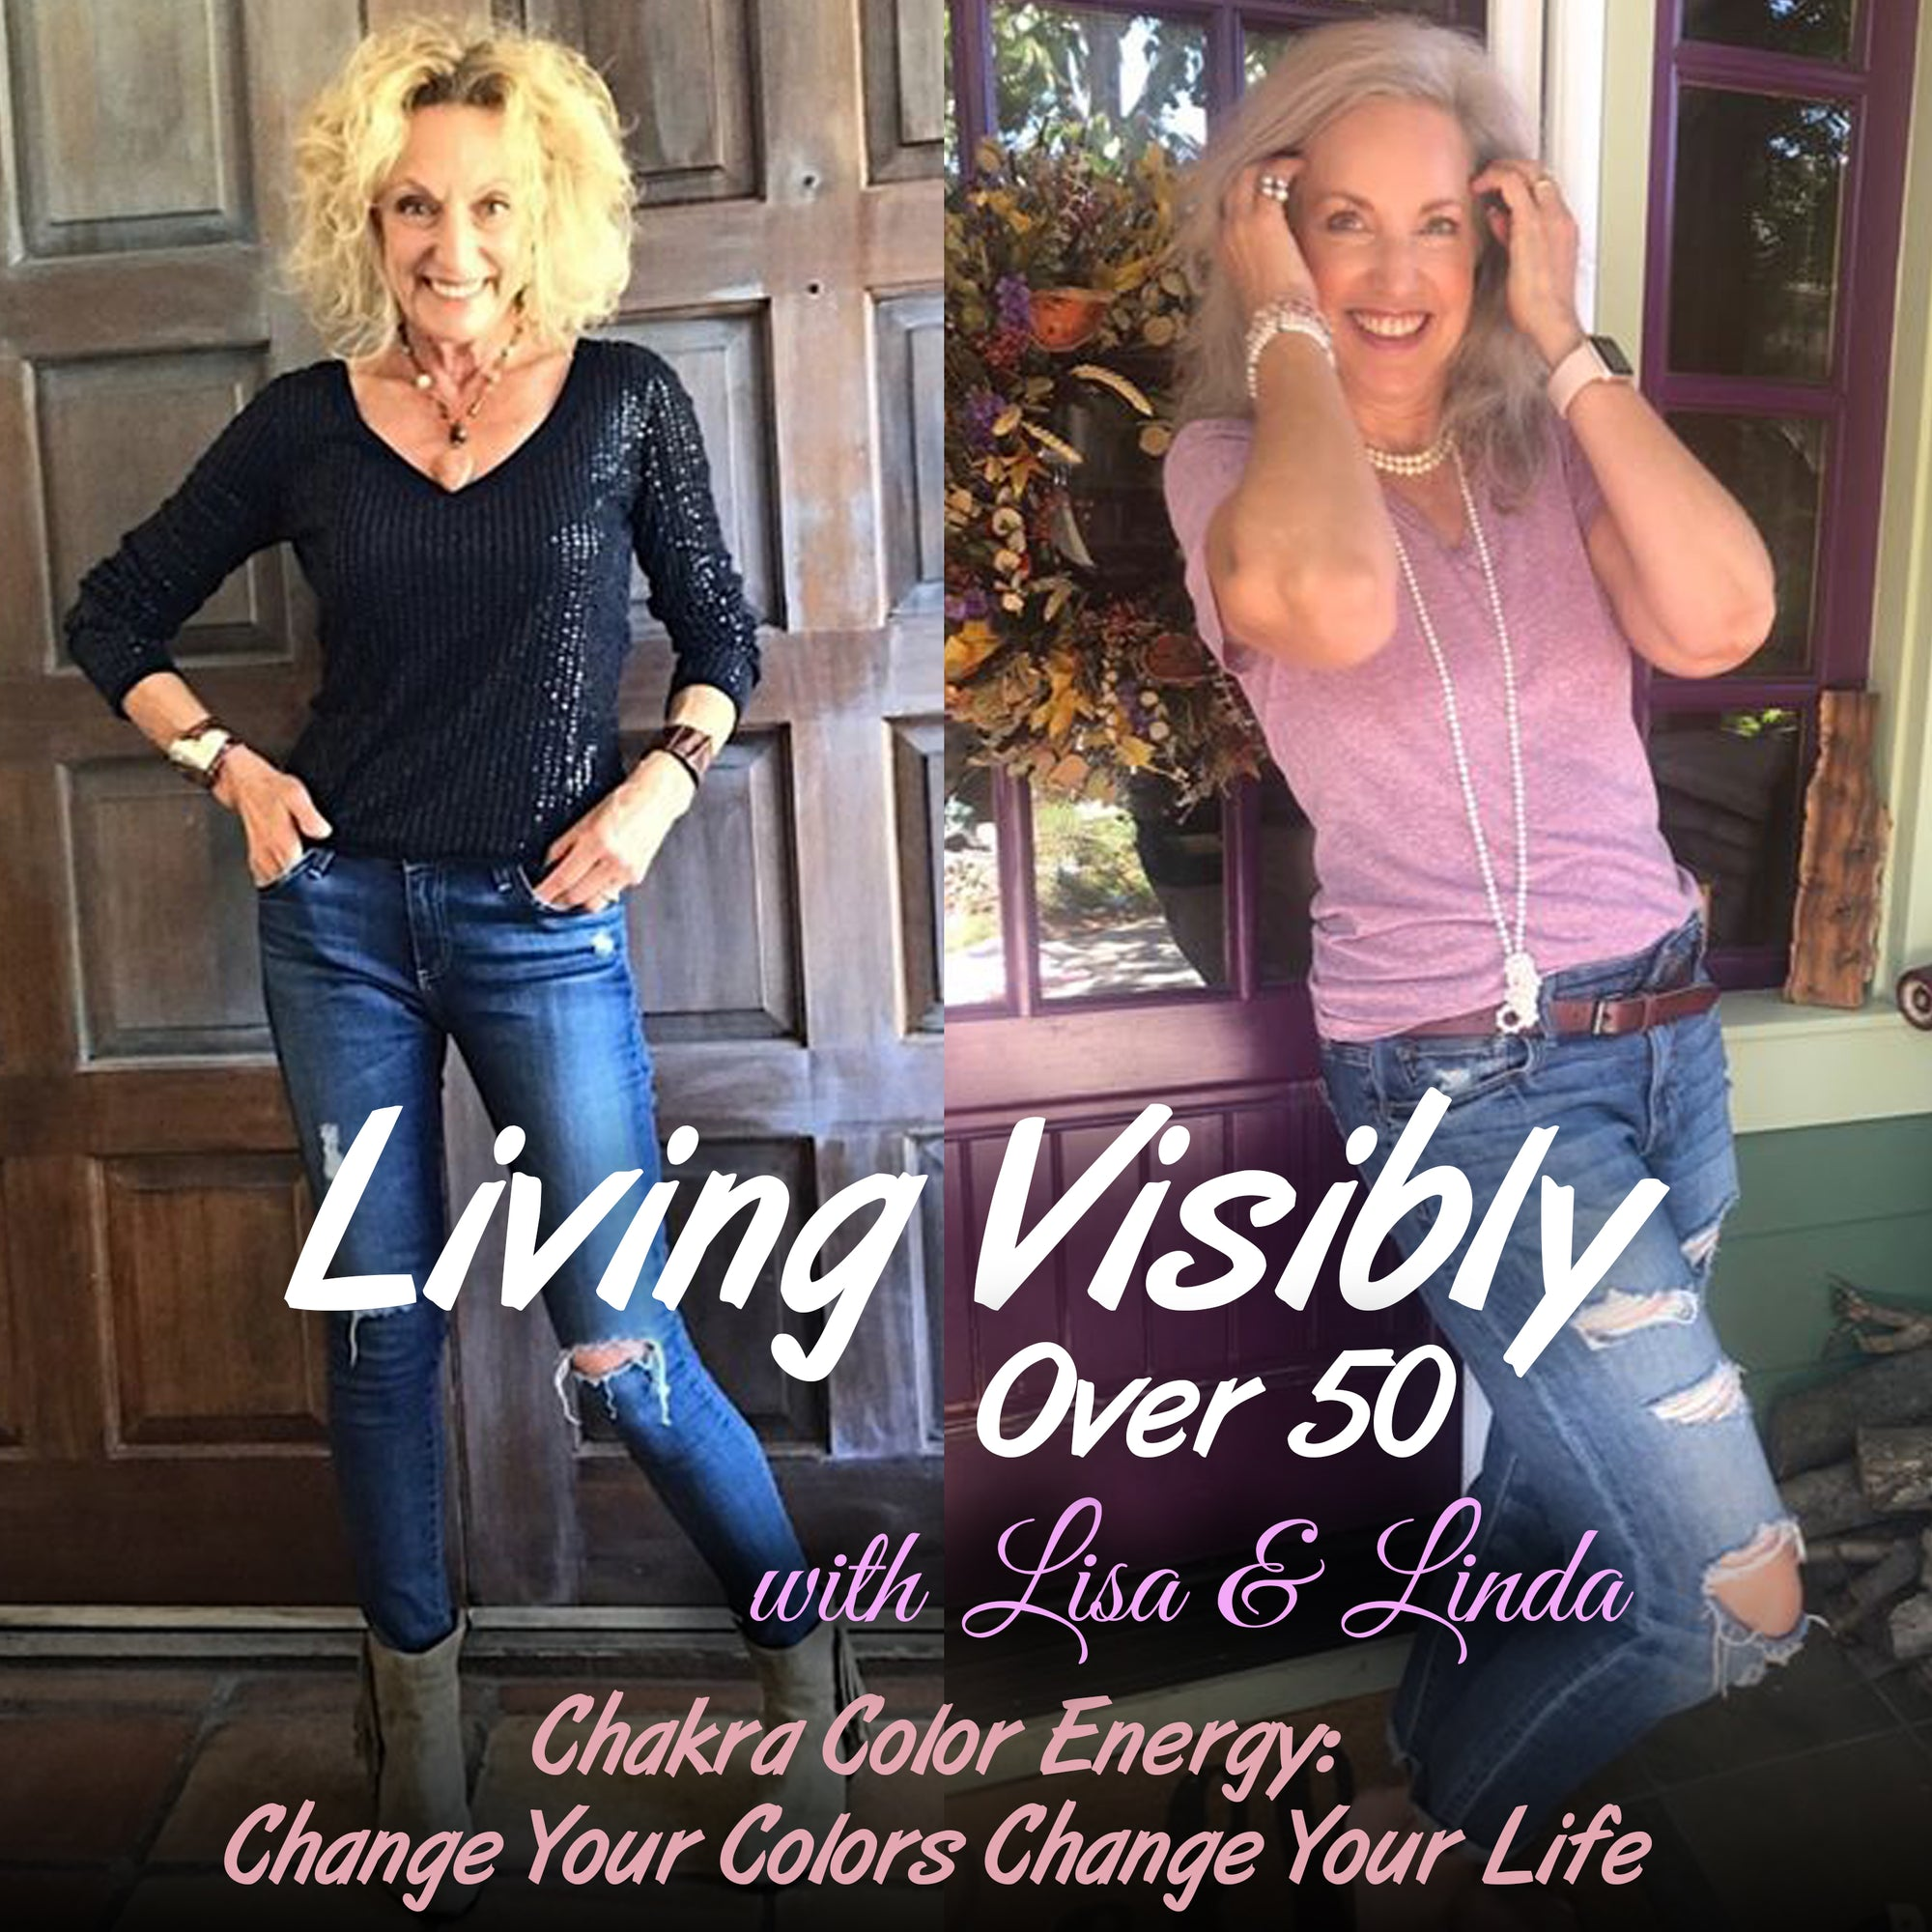 living visibly over 50 chakra color energy for beauty and style